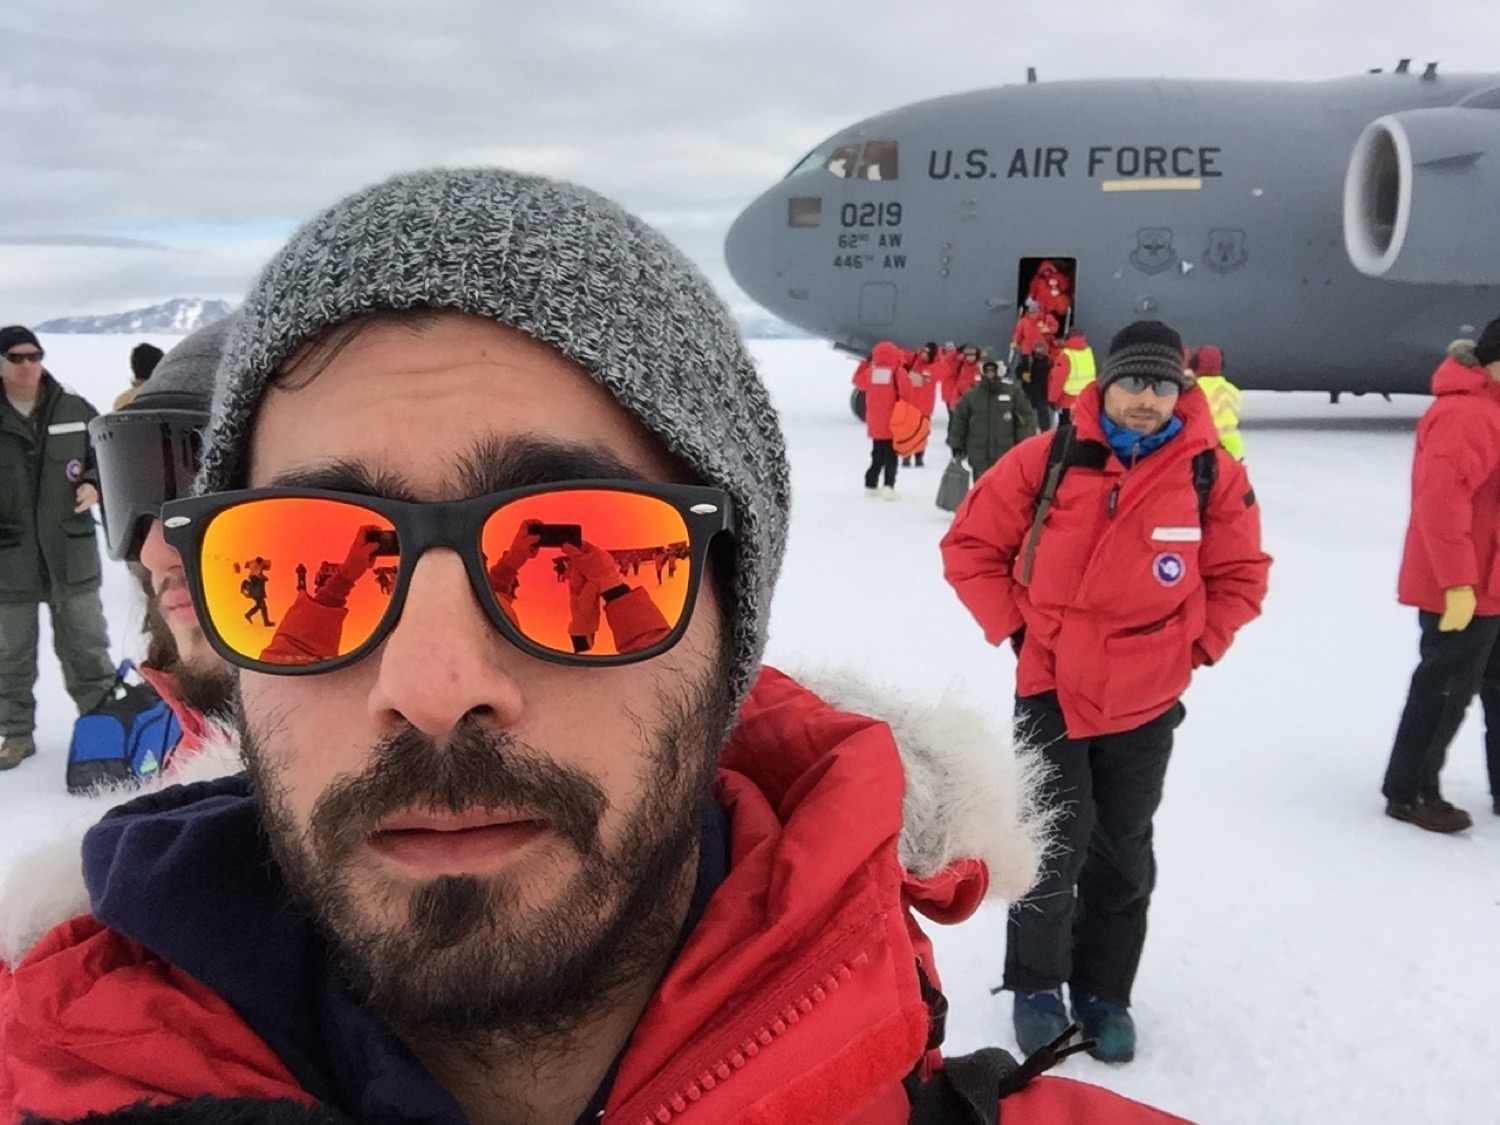 Landing on the Ice. We're offloaded from the C-17 and onto an intimidating transport vehicle called the Cress (I didn't have a chance to snap a good photo). Over my left shoulder is Thomas. This is something like his 14th season down working on precise GPS systems with various scientific applications; there are a lot of Ice addicts, apparently.